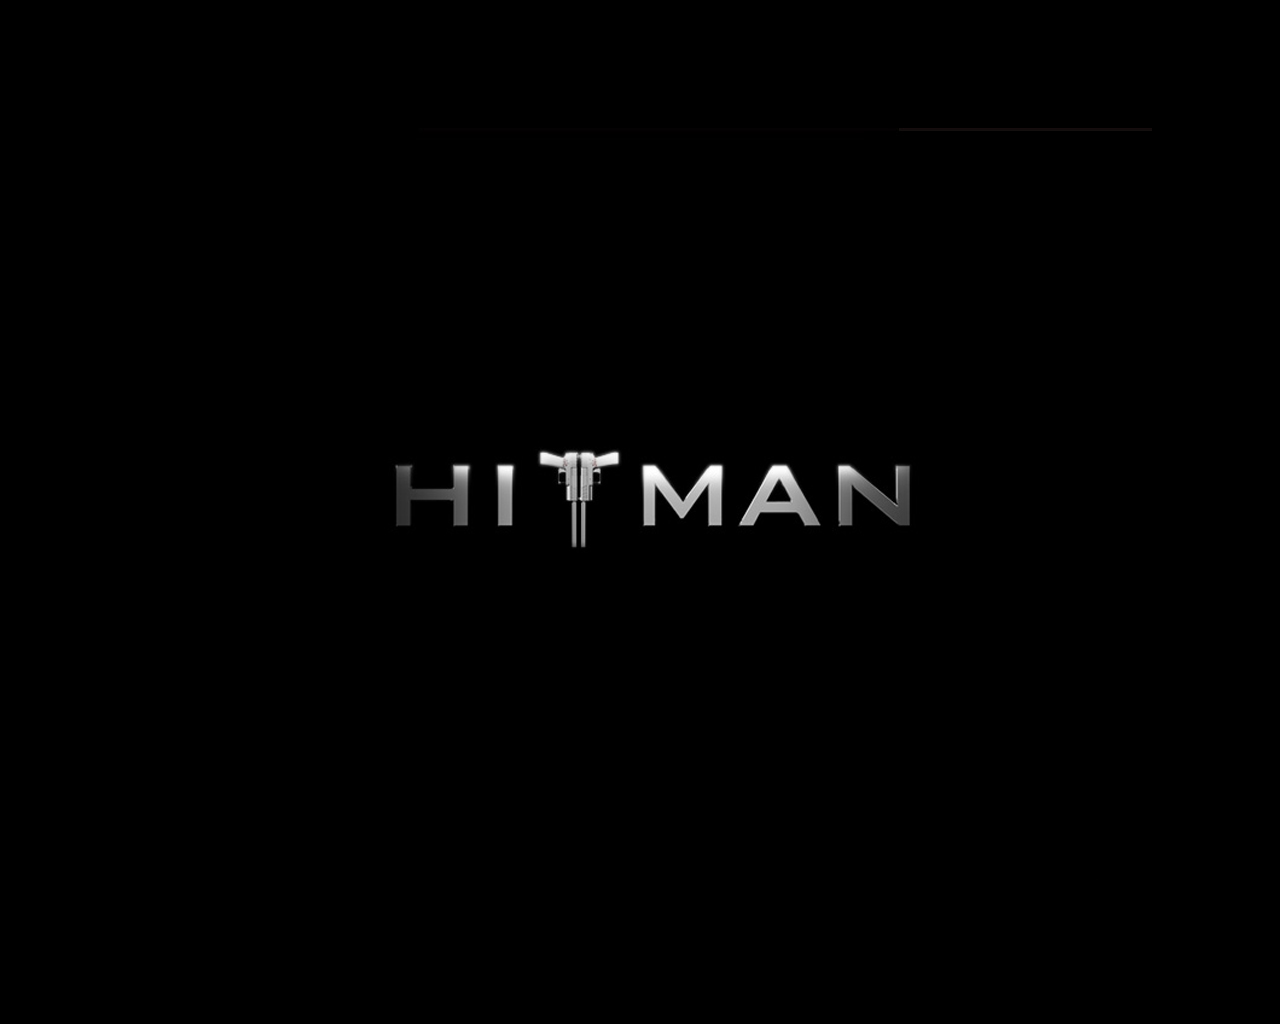 Hitman Movie Logo